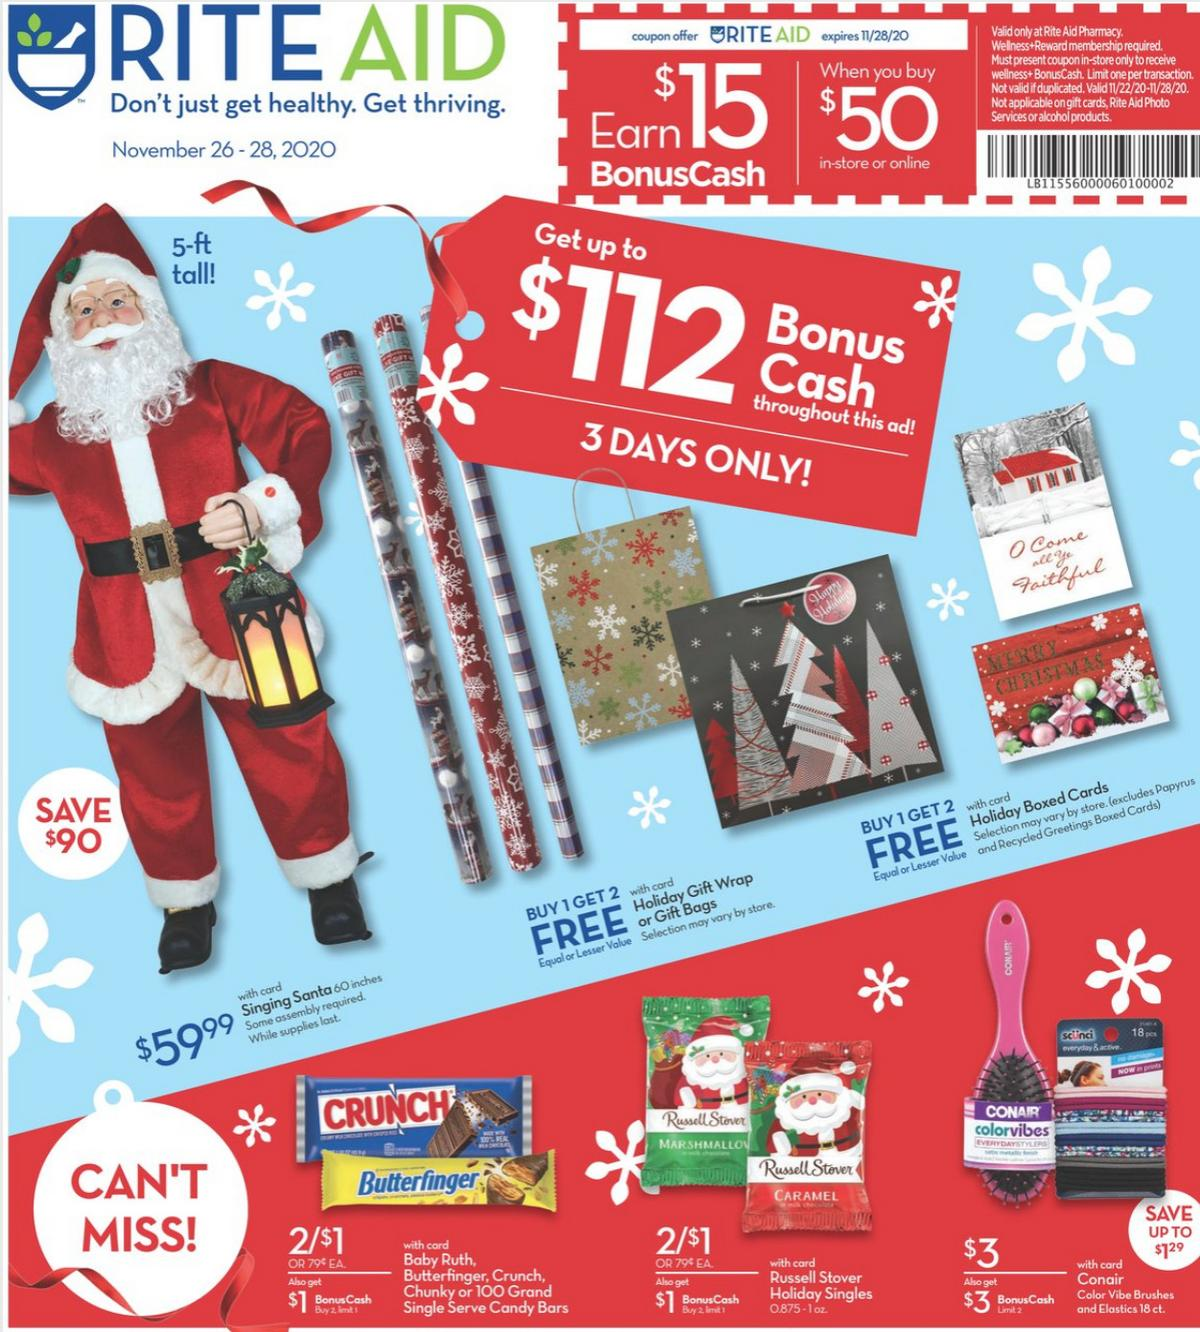 Rite Aid Additional Deals Weekly Ad from November 26